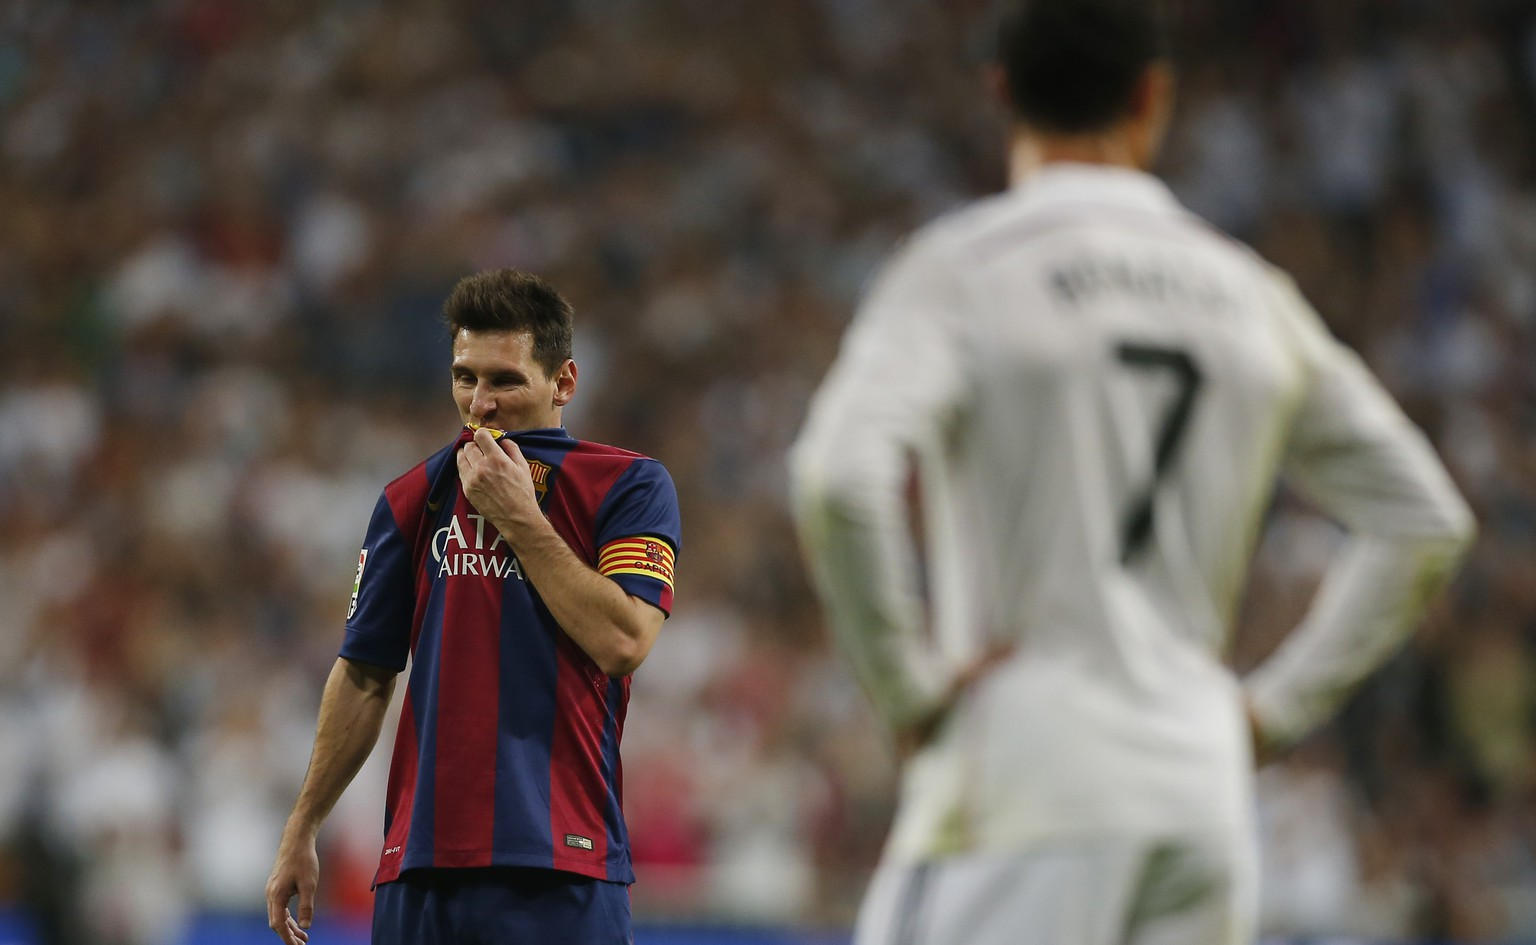 Barcelona's Lionel Messi, left, gestures next to Real Madrid's Cristiano Ronaldo, right,  during a Spanish La Liga soccer match between Real Madrid and FC Barcelona at the Santiago Bernabeu stadium in Madrid, Spain, Saturday, Oct. 25, 2014. (AP Photo/Andres Kudacki)